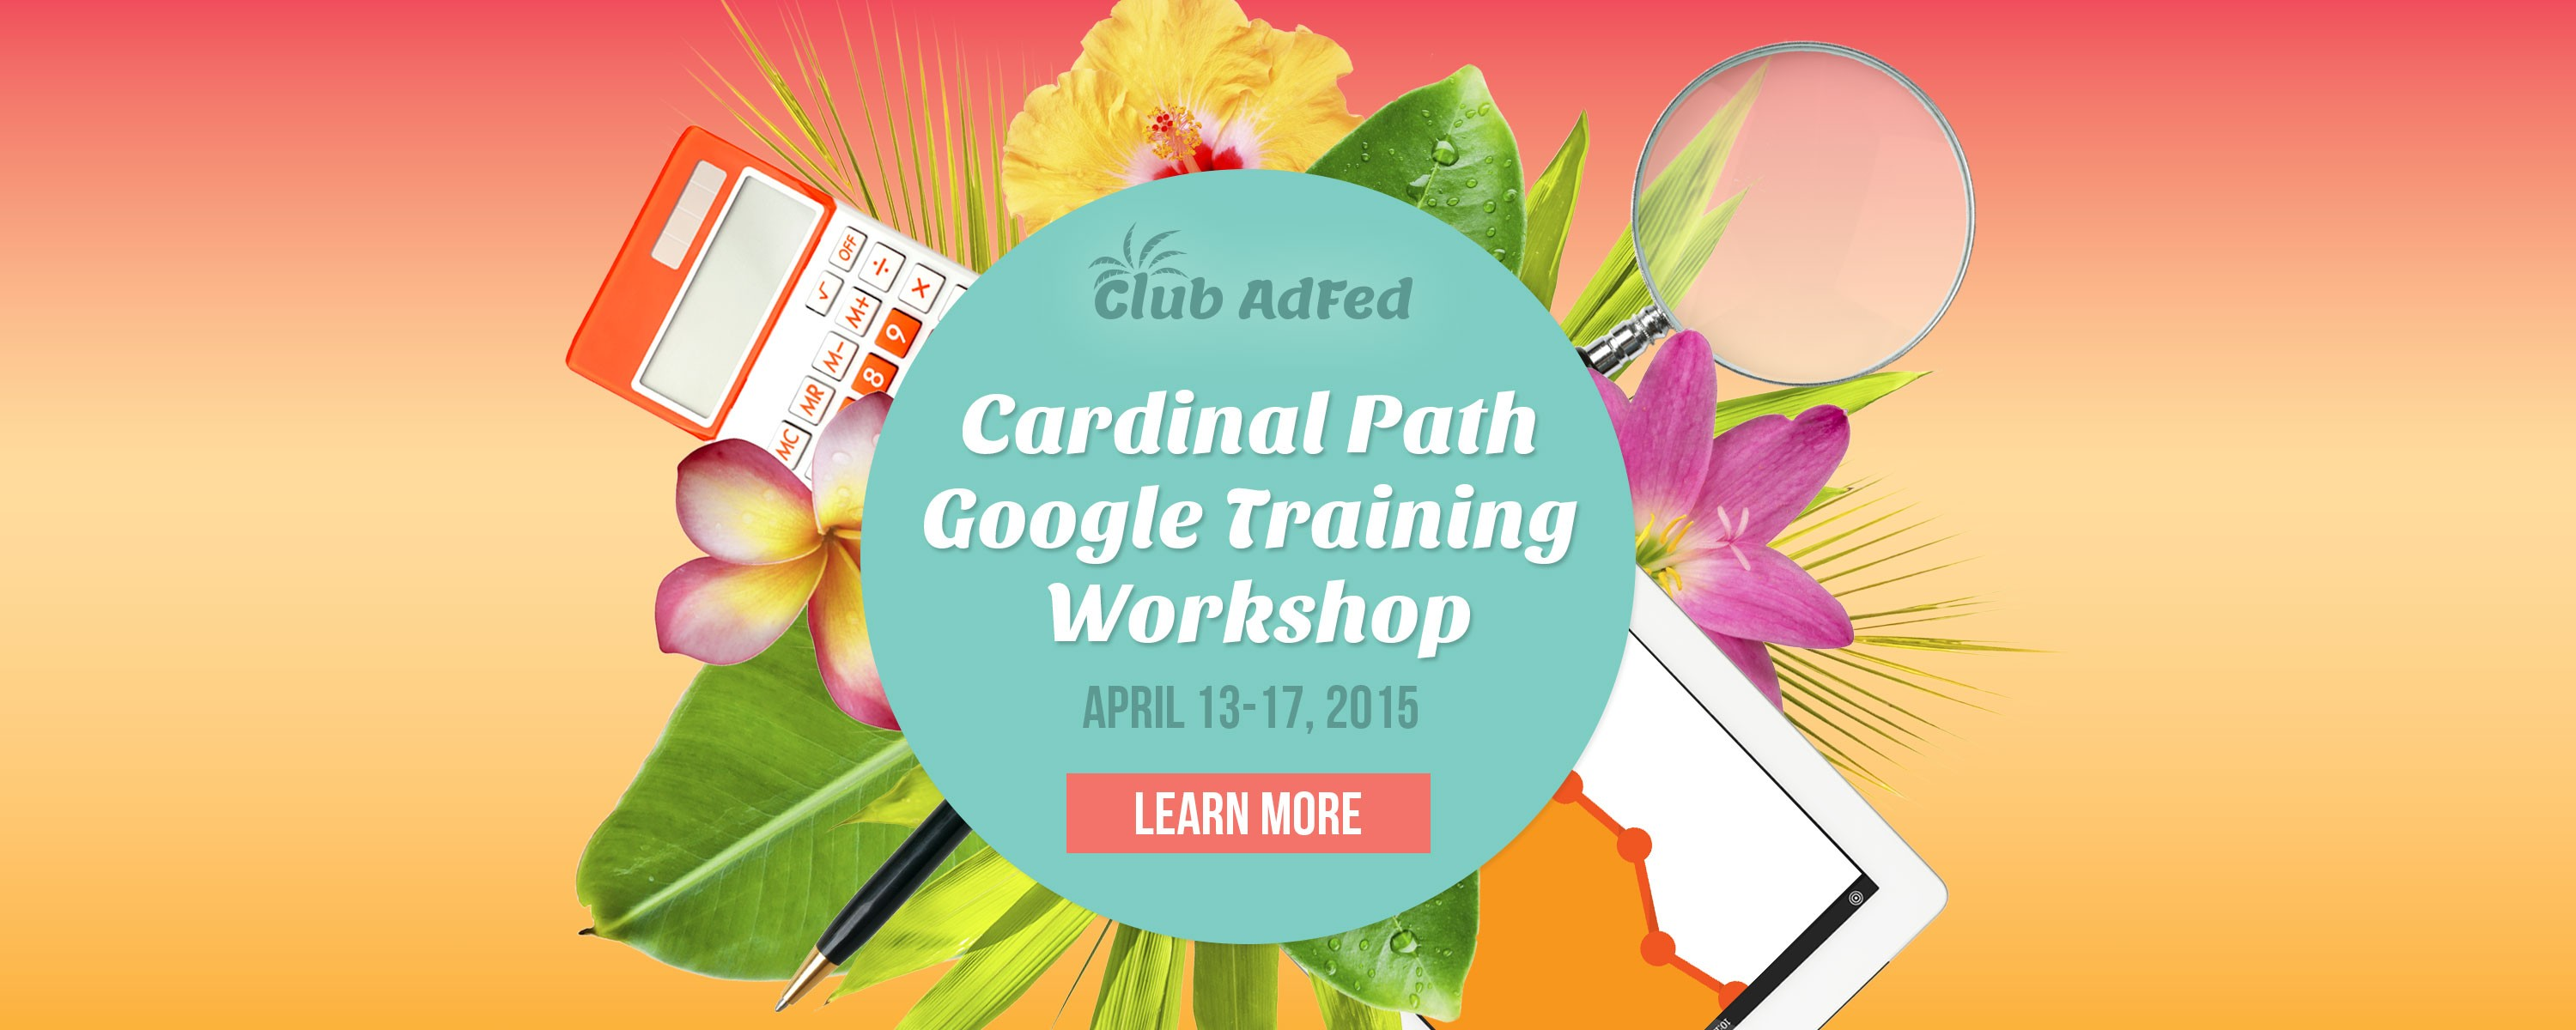 Cardinal Path Google Analytics & Adwords Training